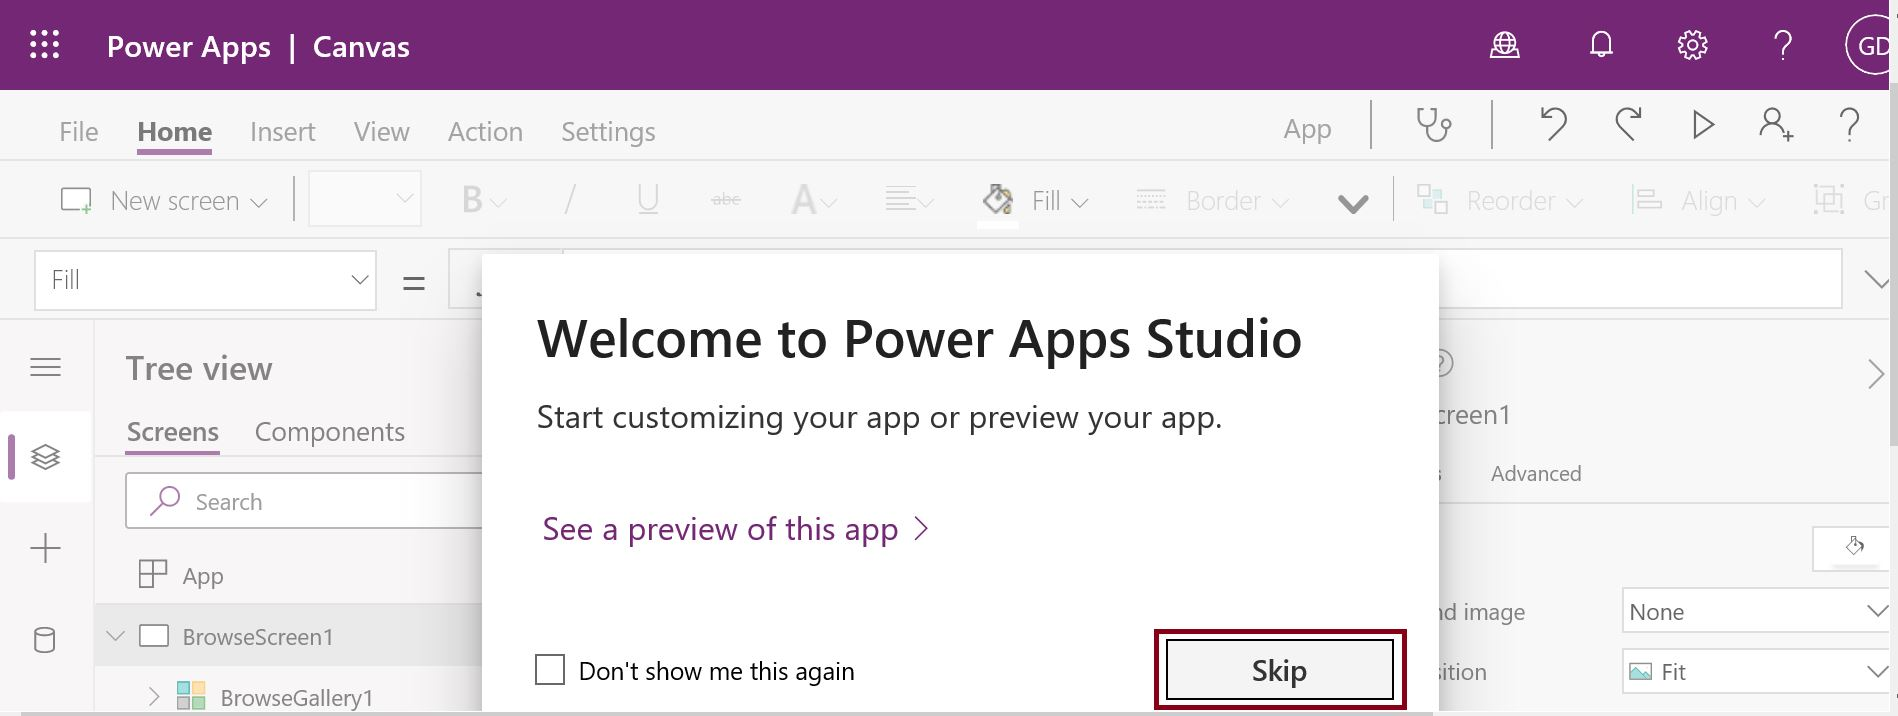 Welcome to PowerApps Studio Skip button